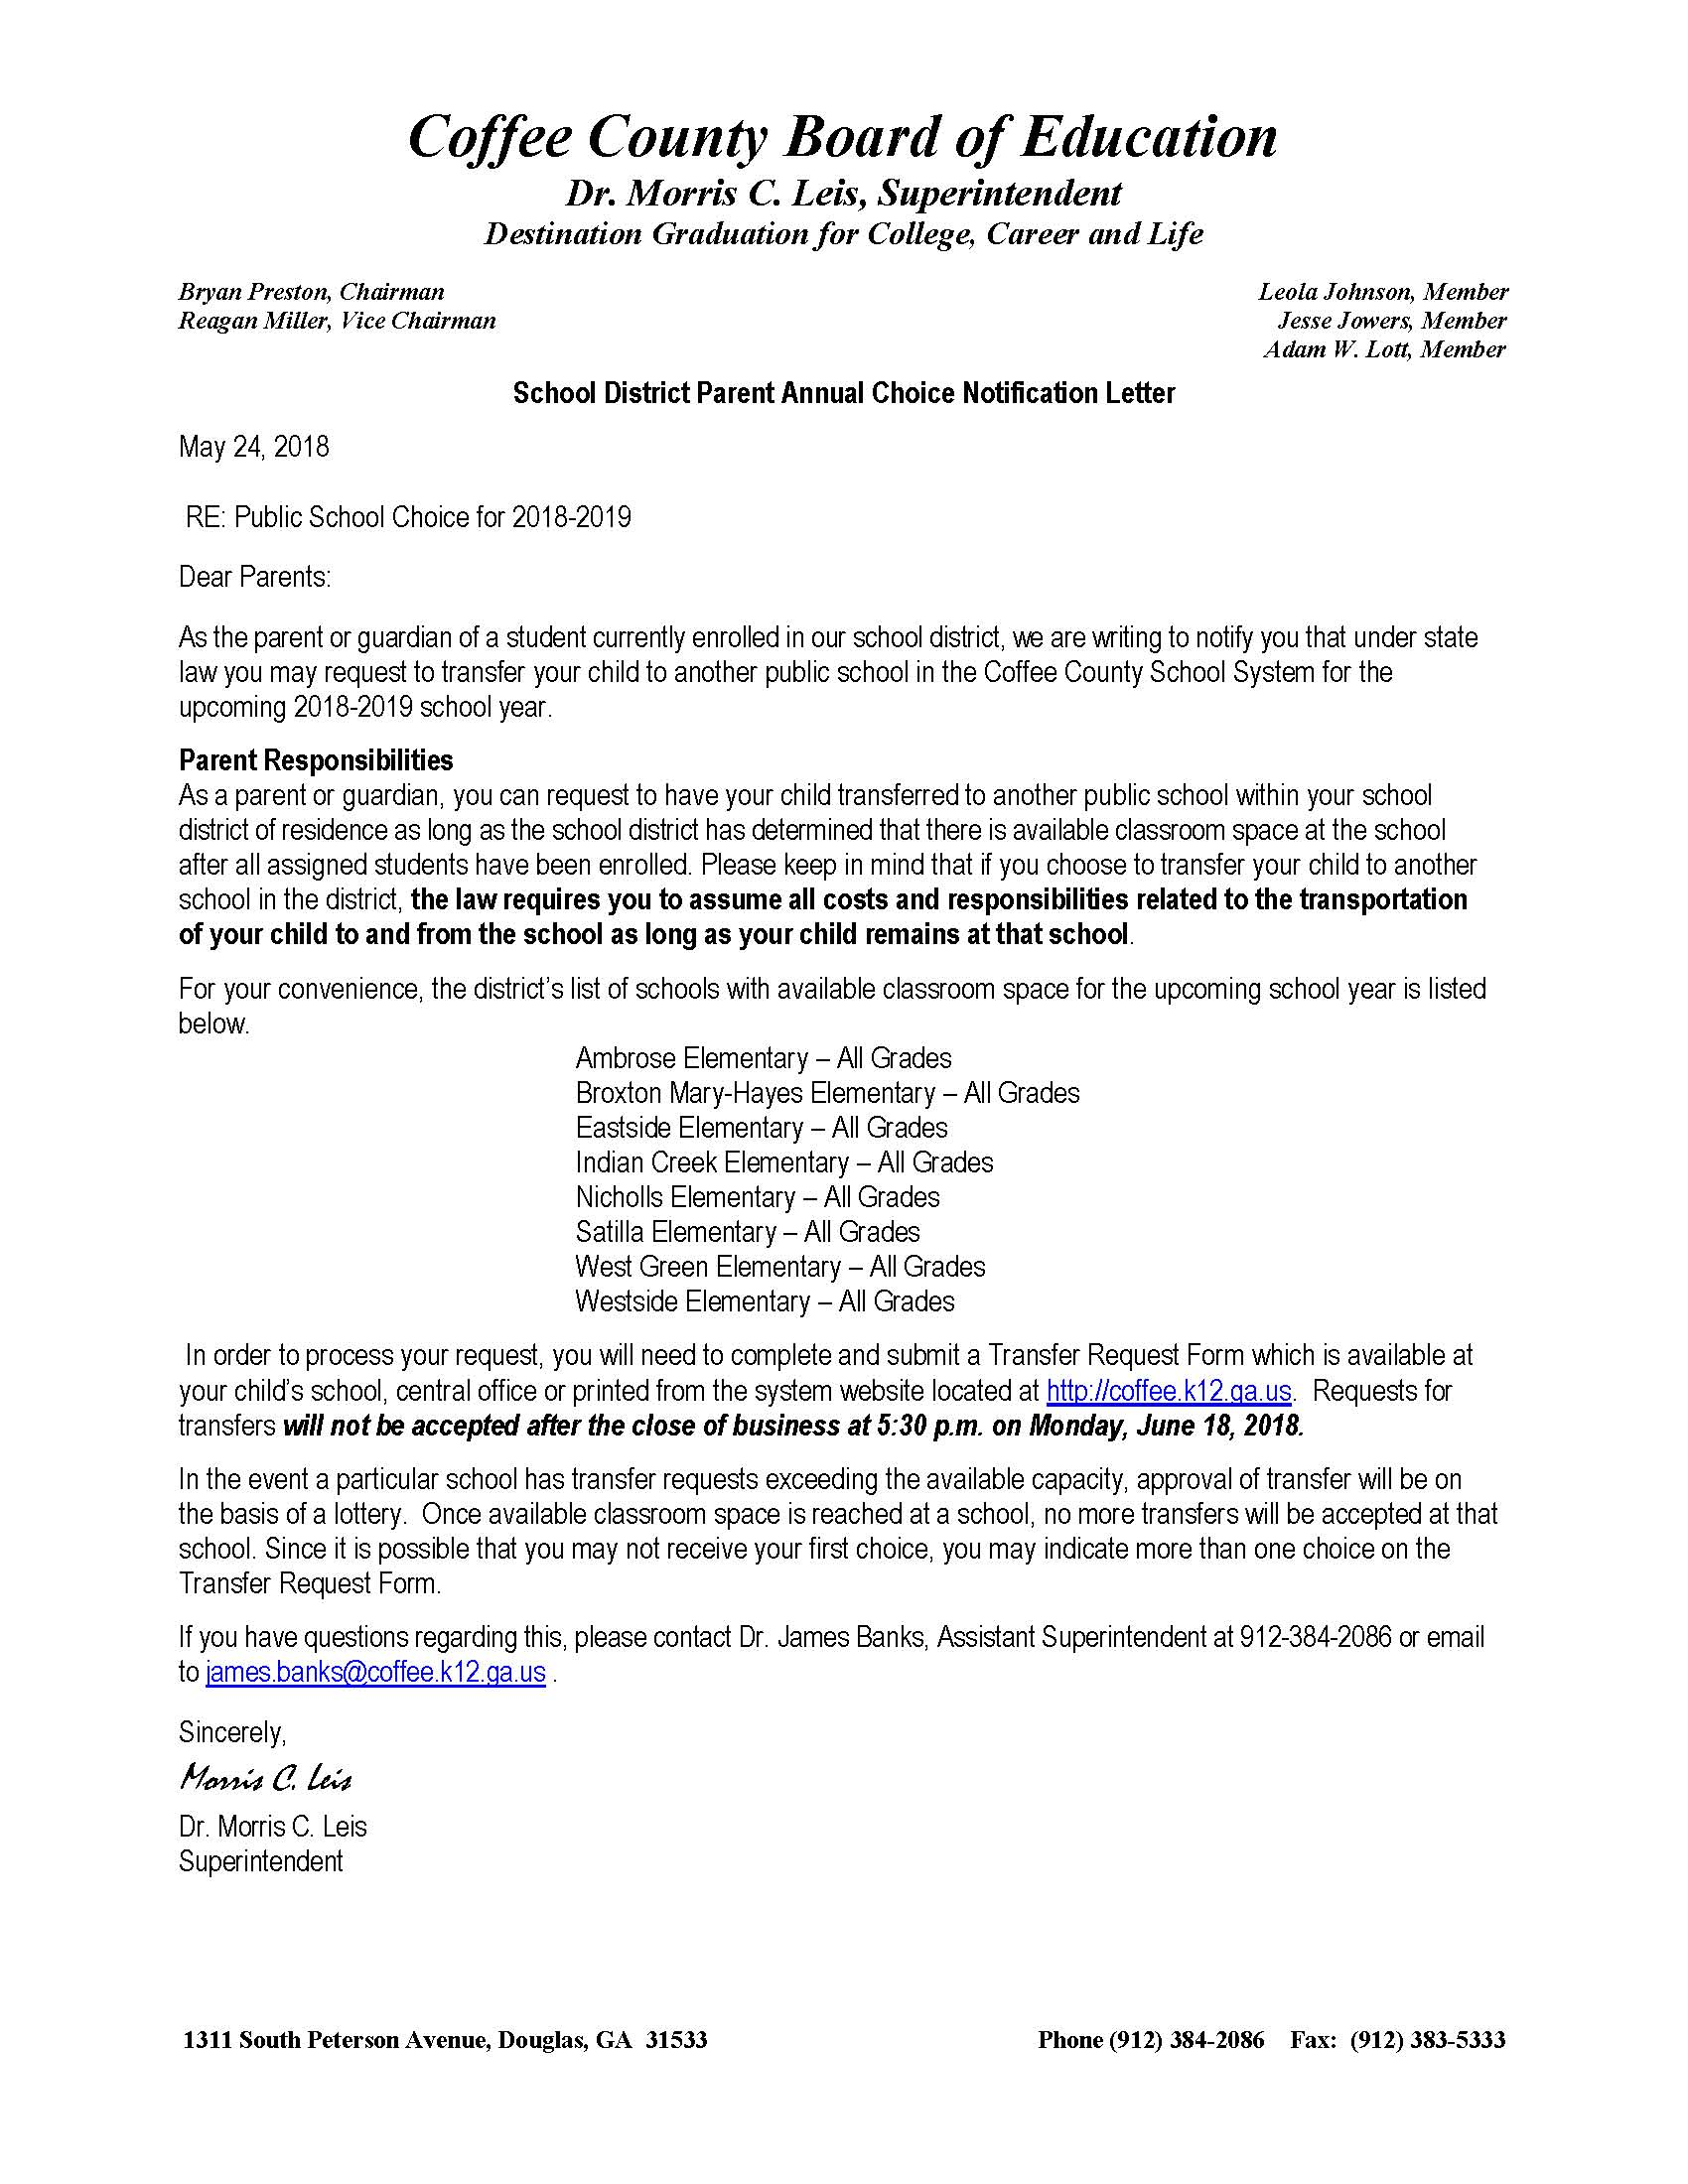 School Choice Notification Letter 2018